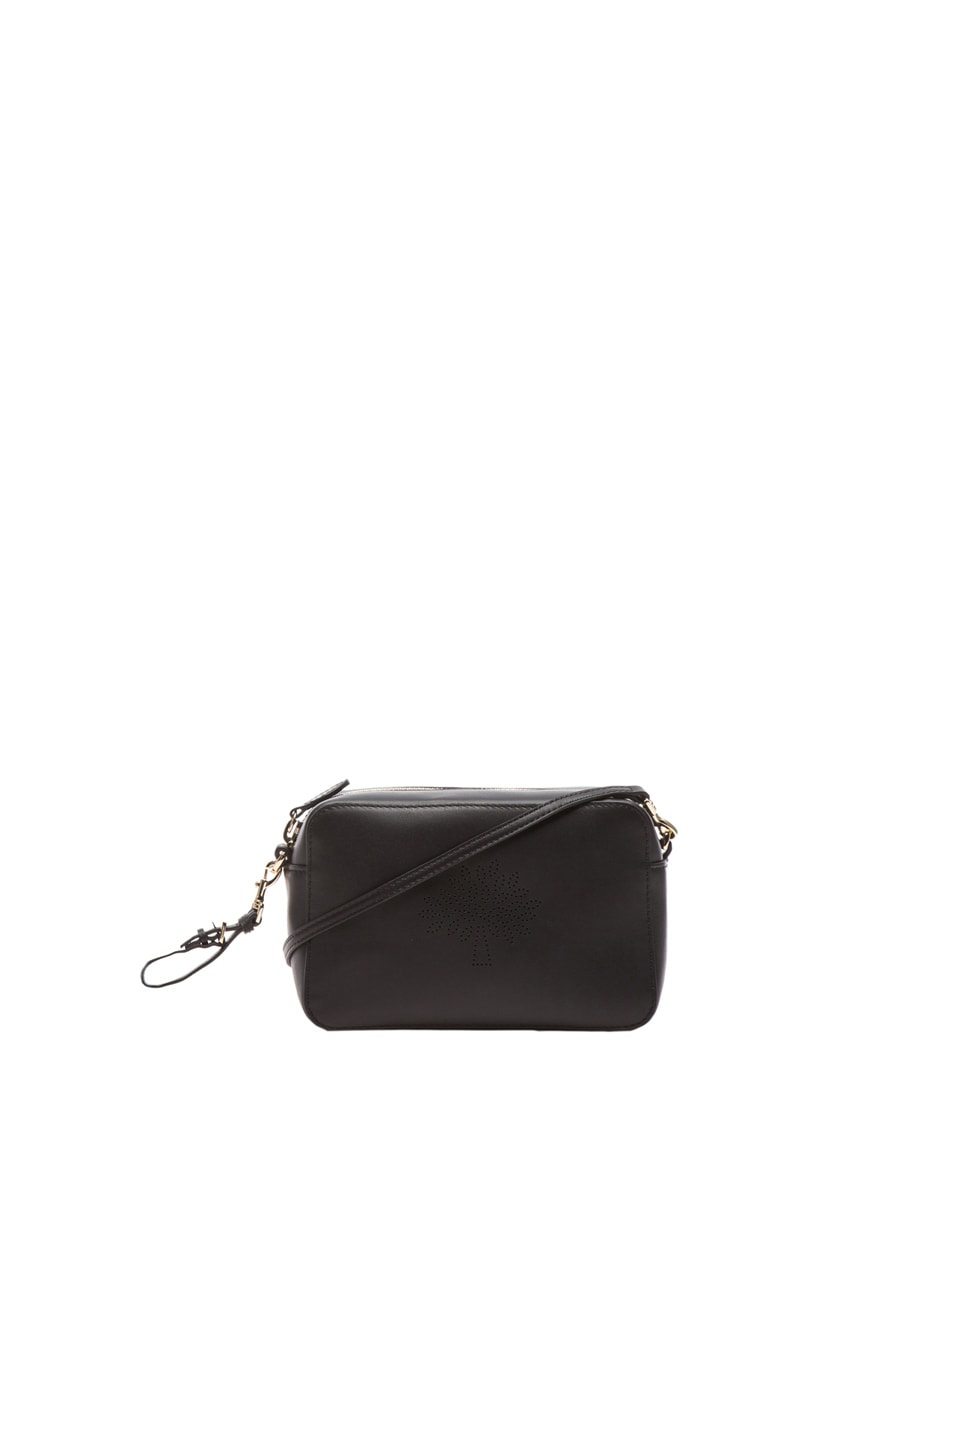 a04b543905 Image 1 of Mulberry Blossom Pochette in Black